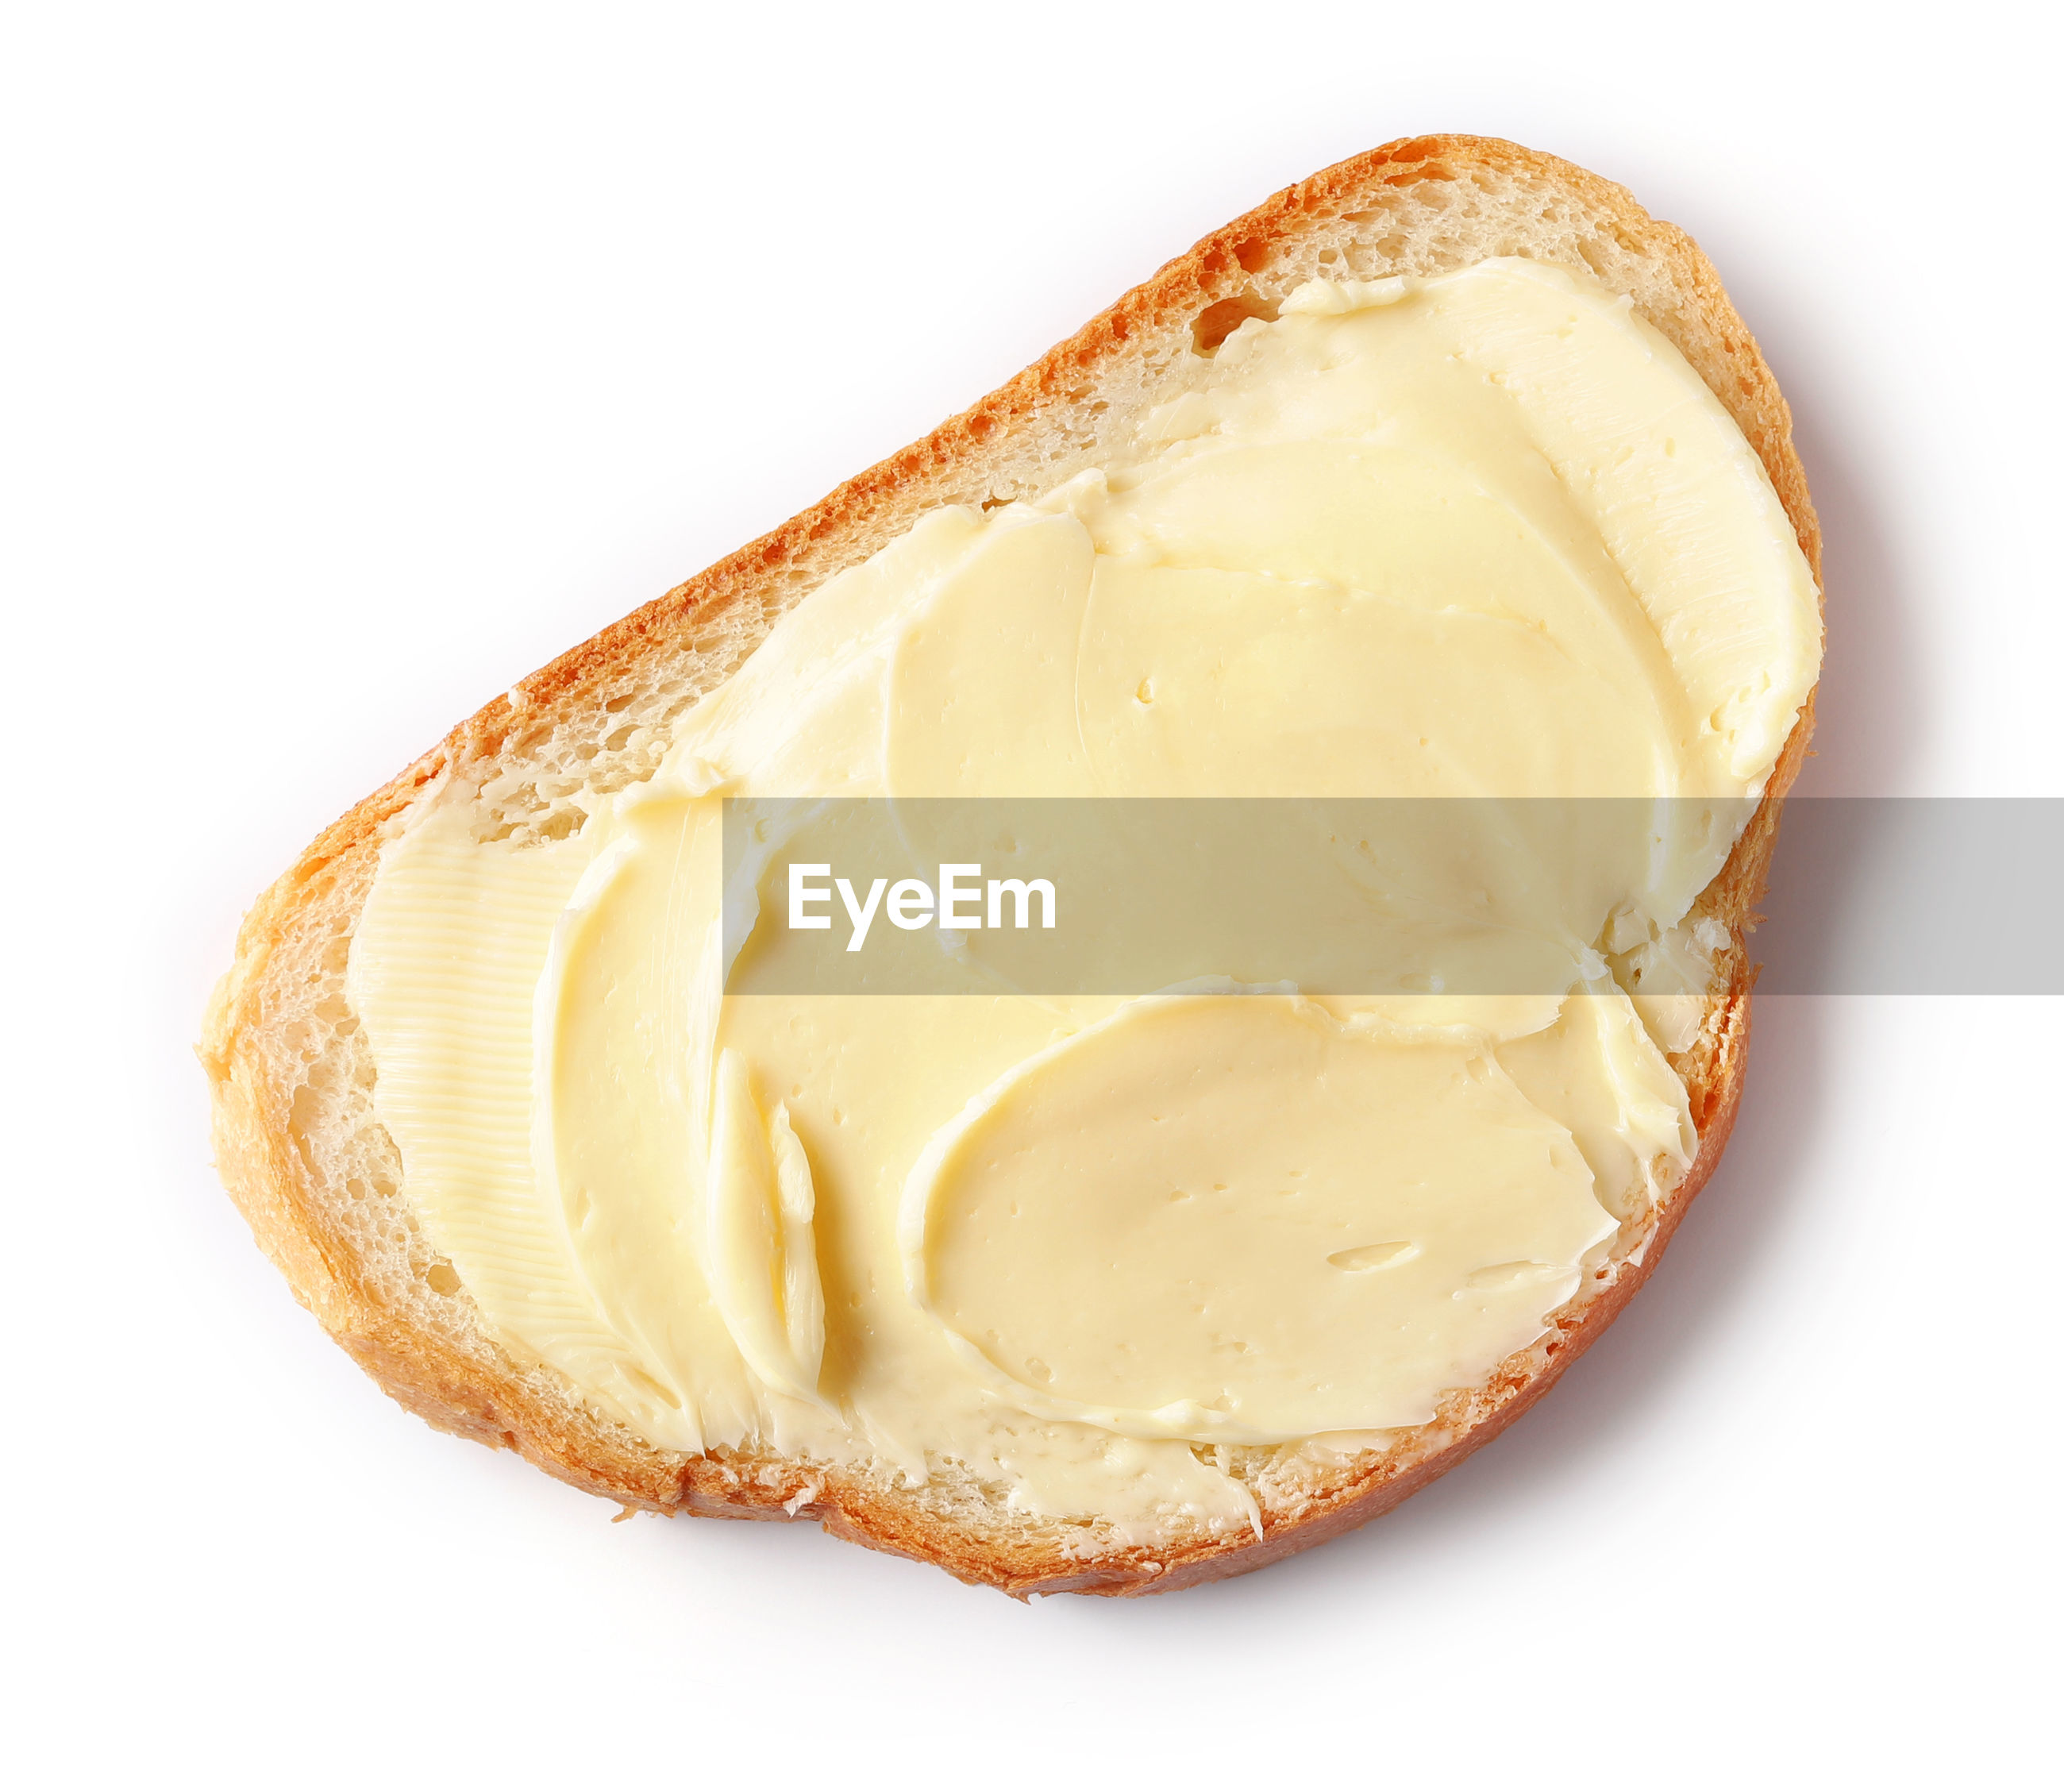 Close-up of margarine spread on bread against white background